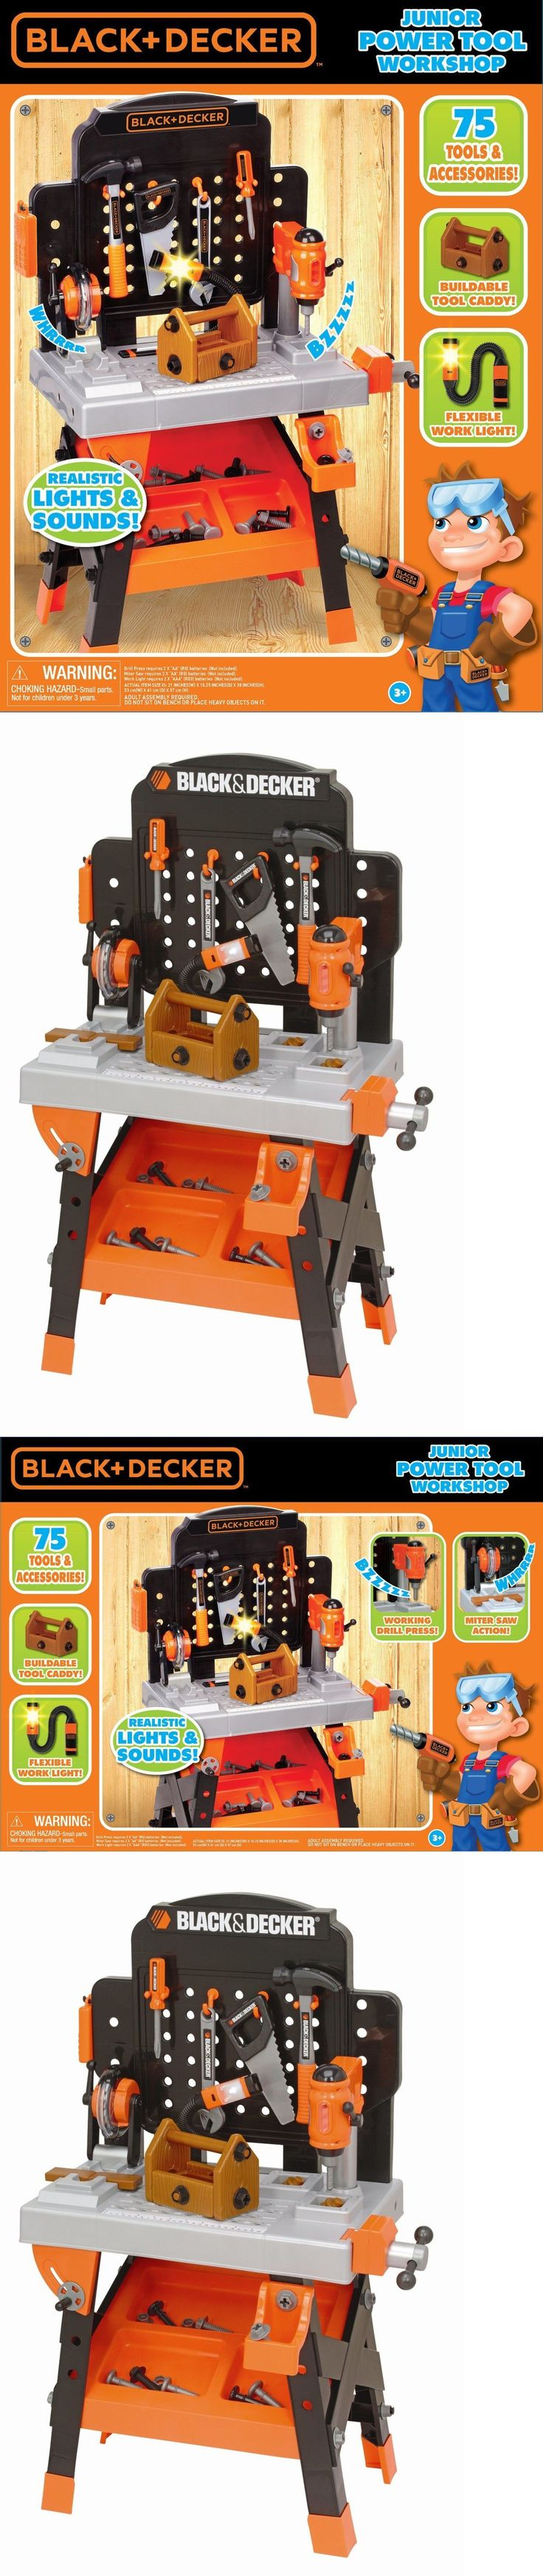 Tool Sets 158747: Black Decker Kids Tool Set Toy Workshop Power Tools Box Bench Pretend Play -> BUY IT NOW ONLY: $84.91 on eBay!